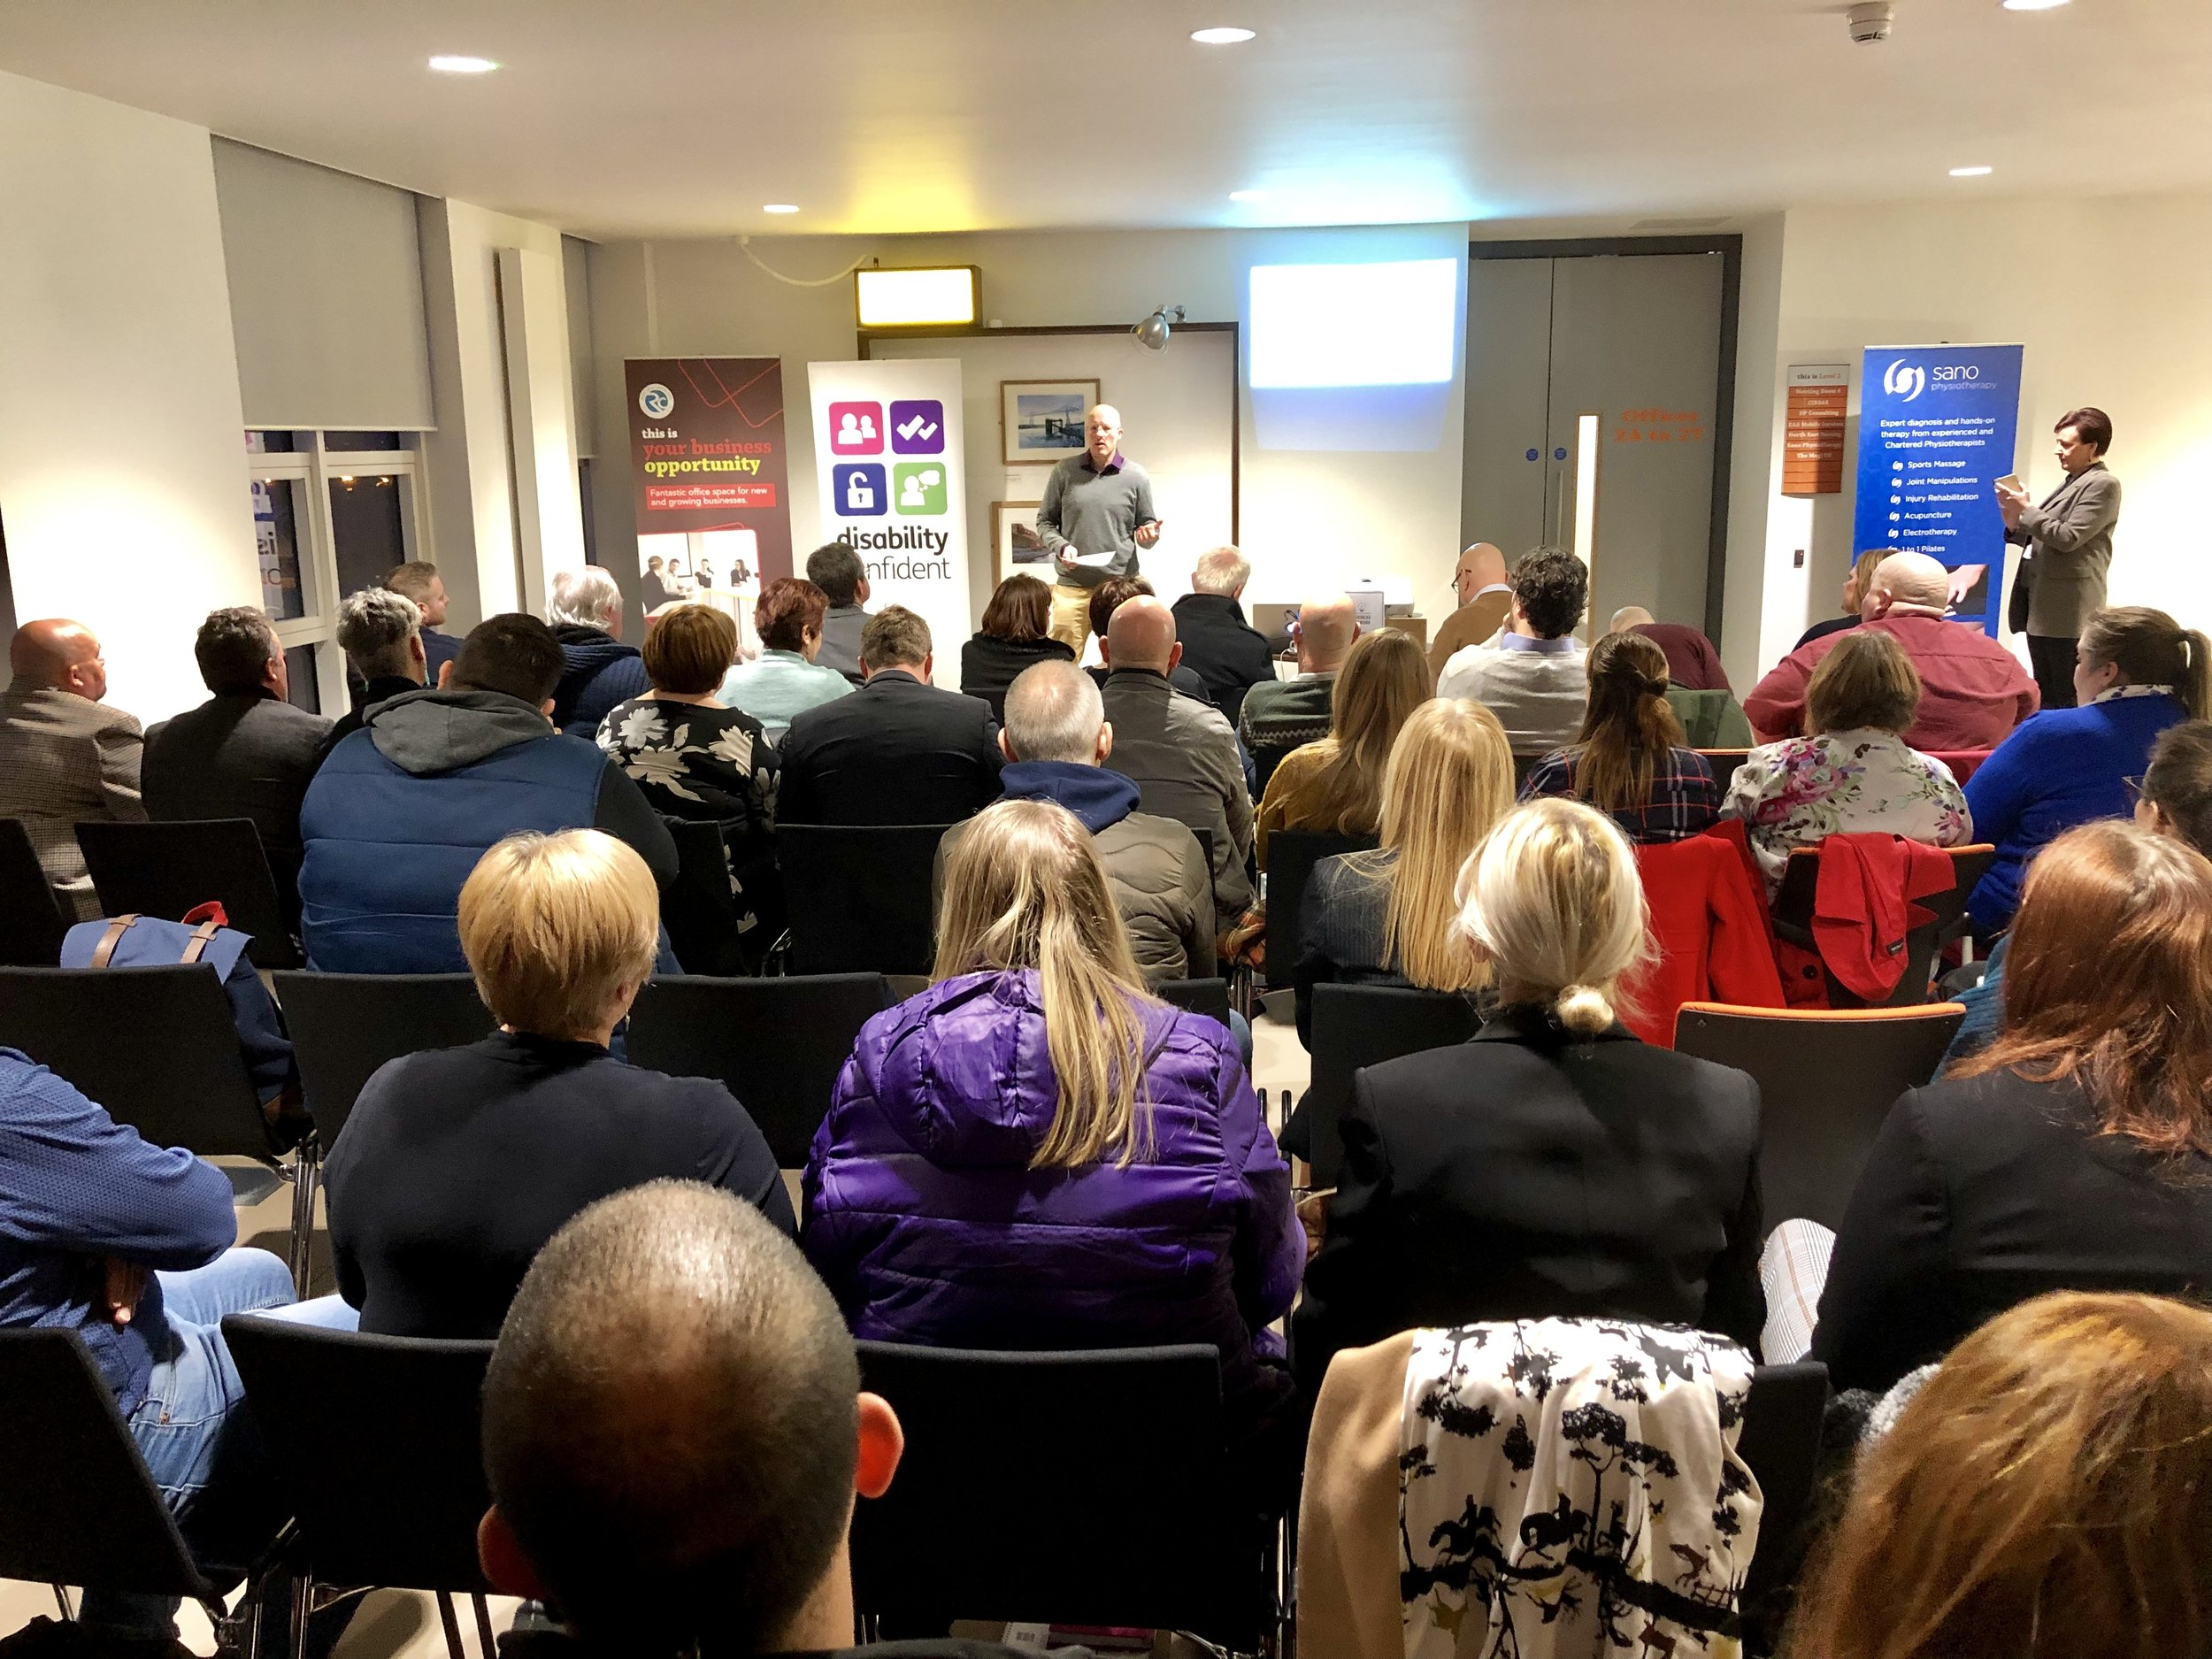 Crowded room of seated people facing Darren Winter from Duco Digital and Karen King from Kings Celebrant Services filming event.